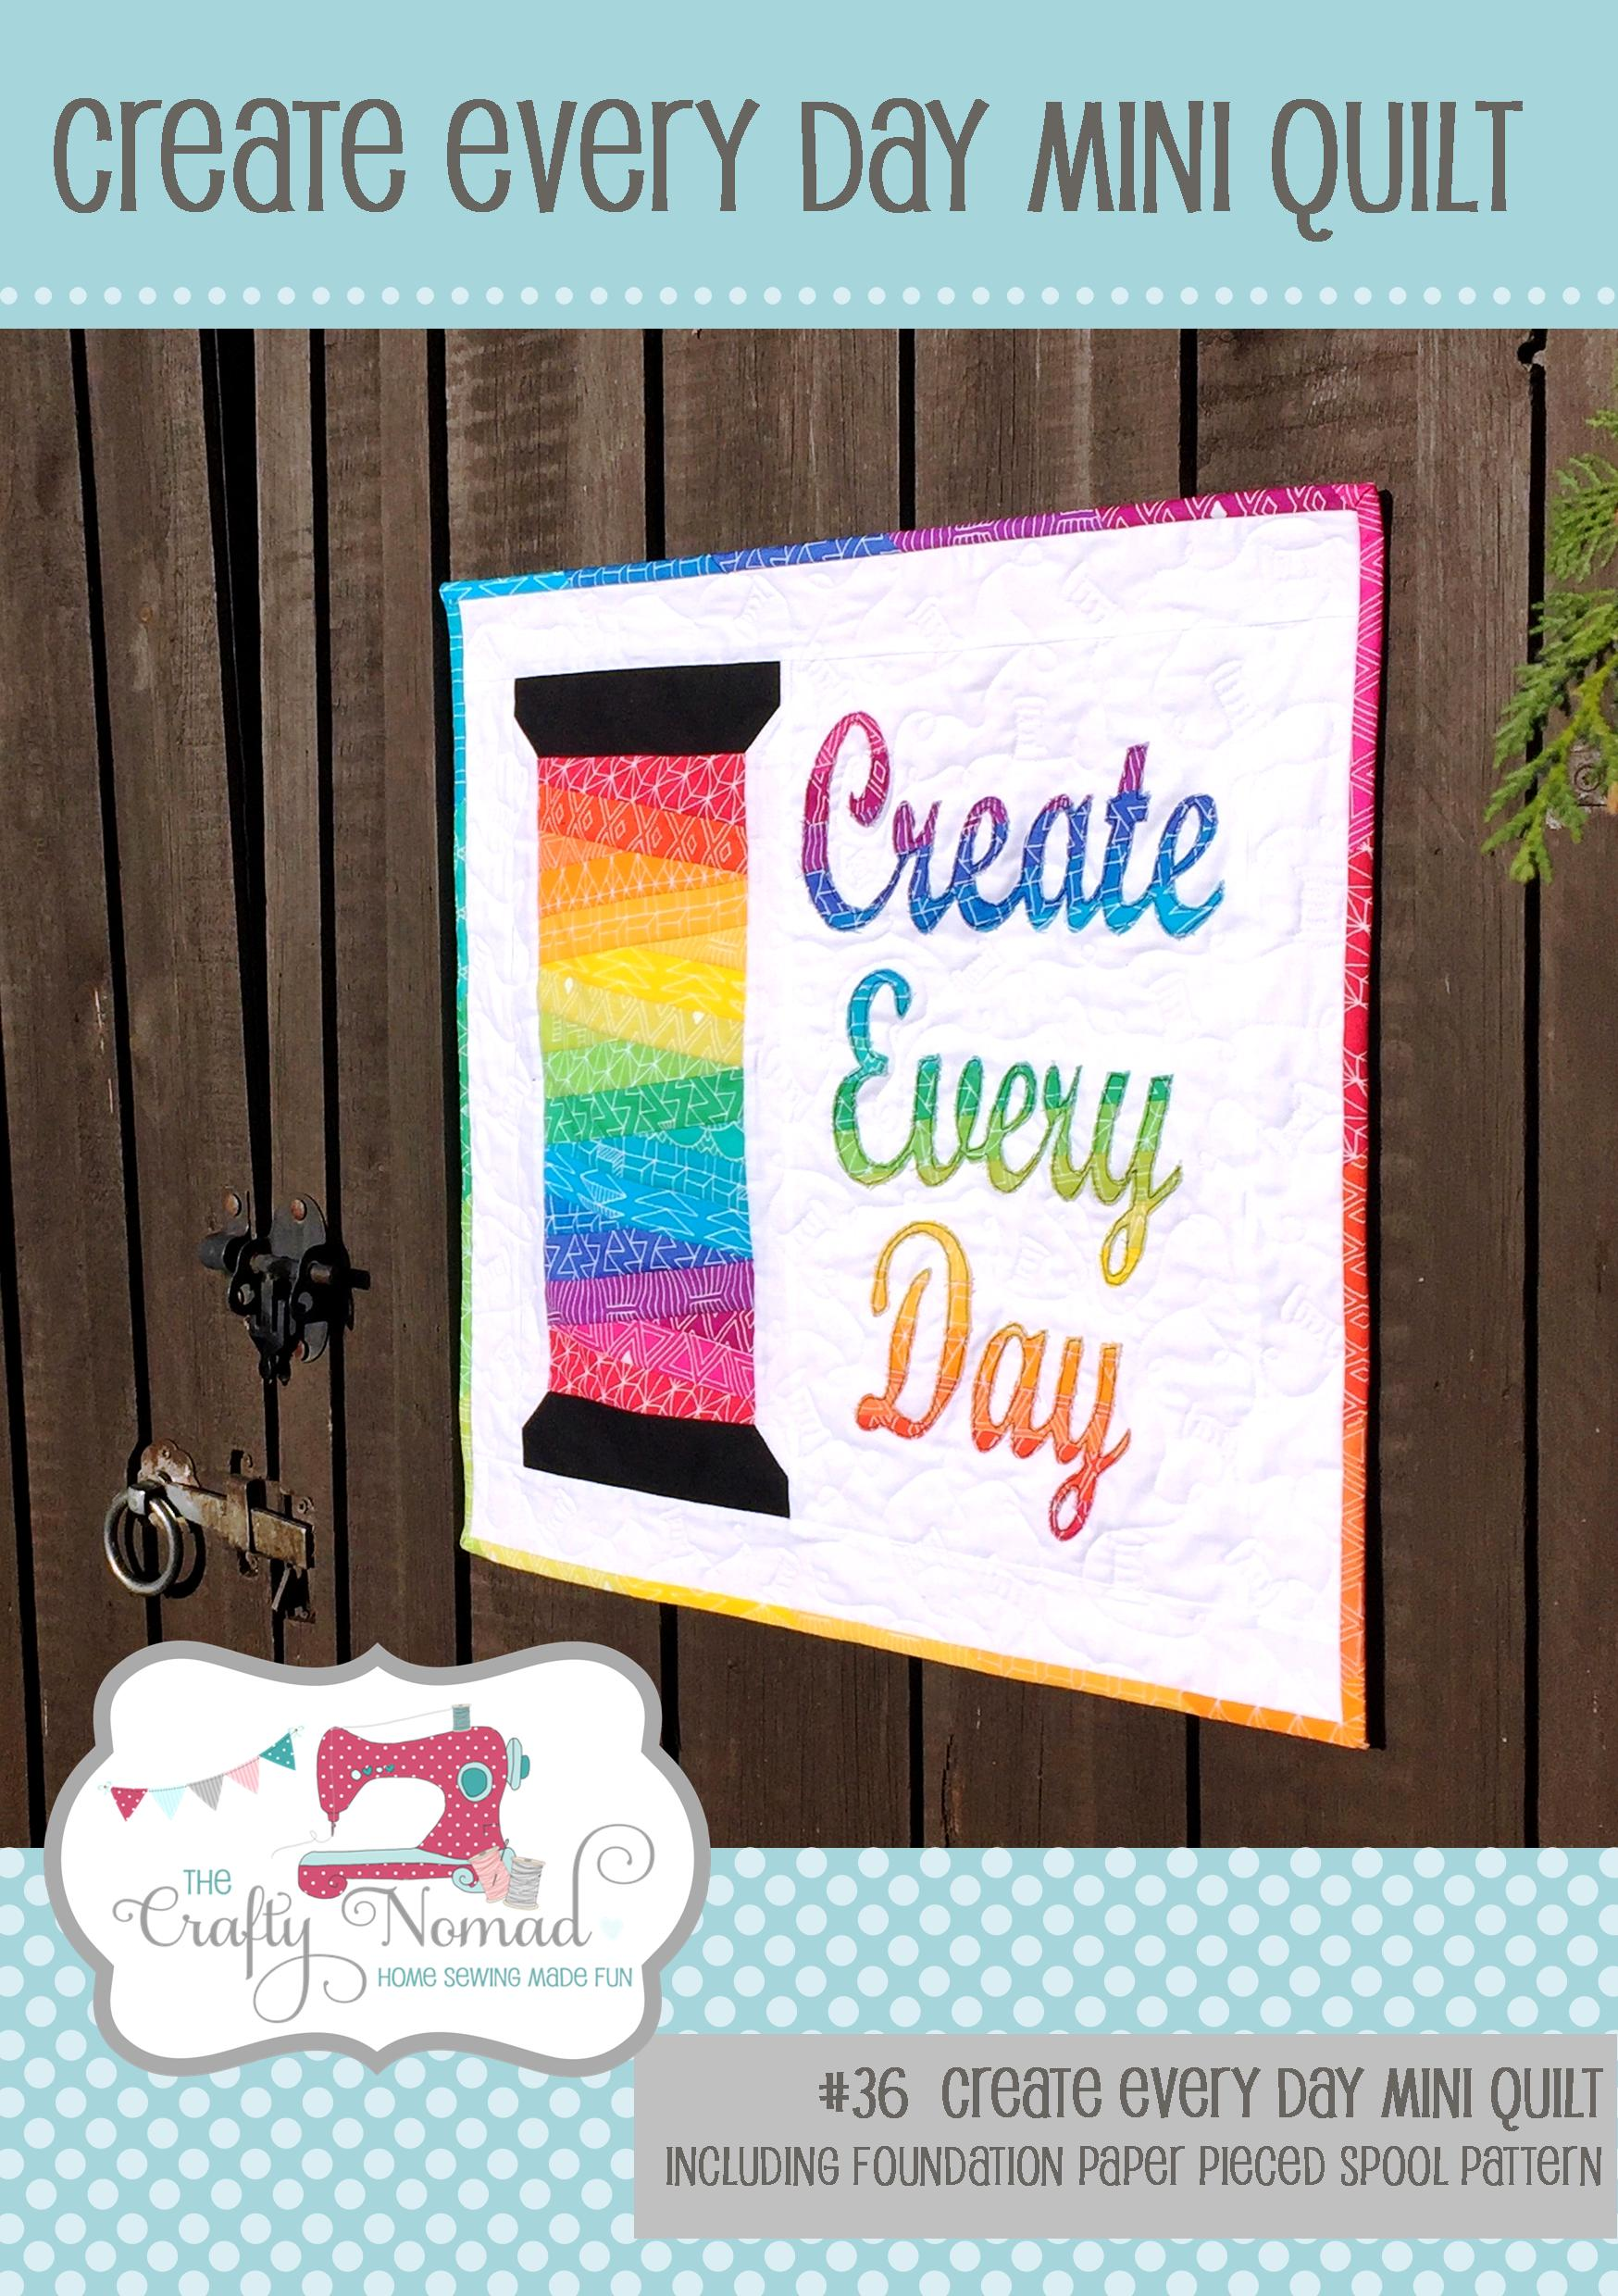 Create Every Day Mini Quilt - Everyone needs to be reminded to make time to be creative, right? It's so good for our wellbeing to be creative every day. So having this mini quilt on your wall can serve as a daily reminder! This mini quilt consists of a Foundation Paper Pieced Pattern (the spool), regular piecing and raw edge appliqué (the letters).The mini quilt finishes up at 22 inches square. There are also measurements for making it 20 inch square, so that you can make it into a cushion instead.